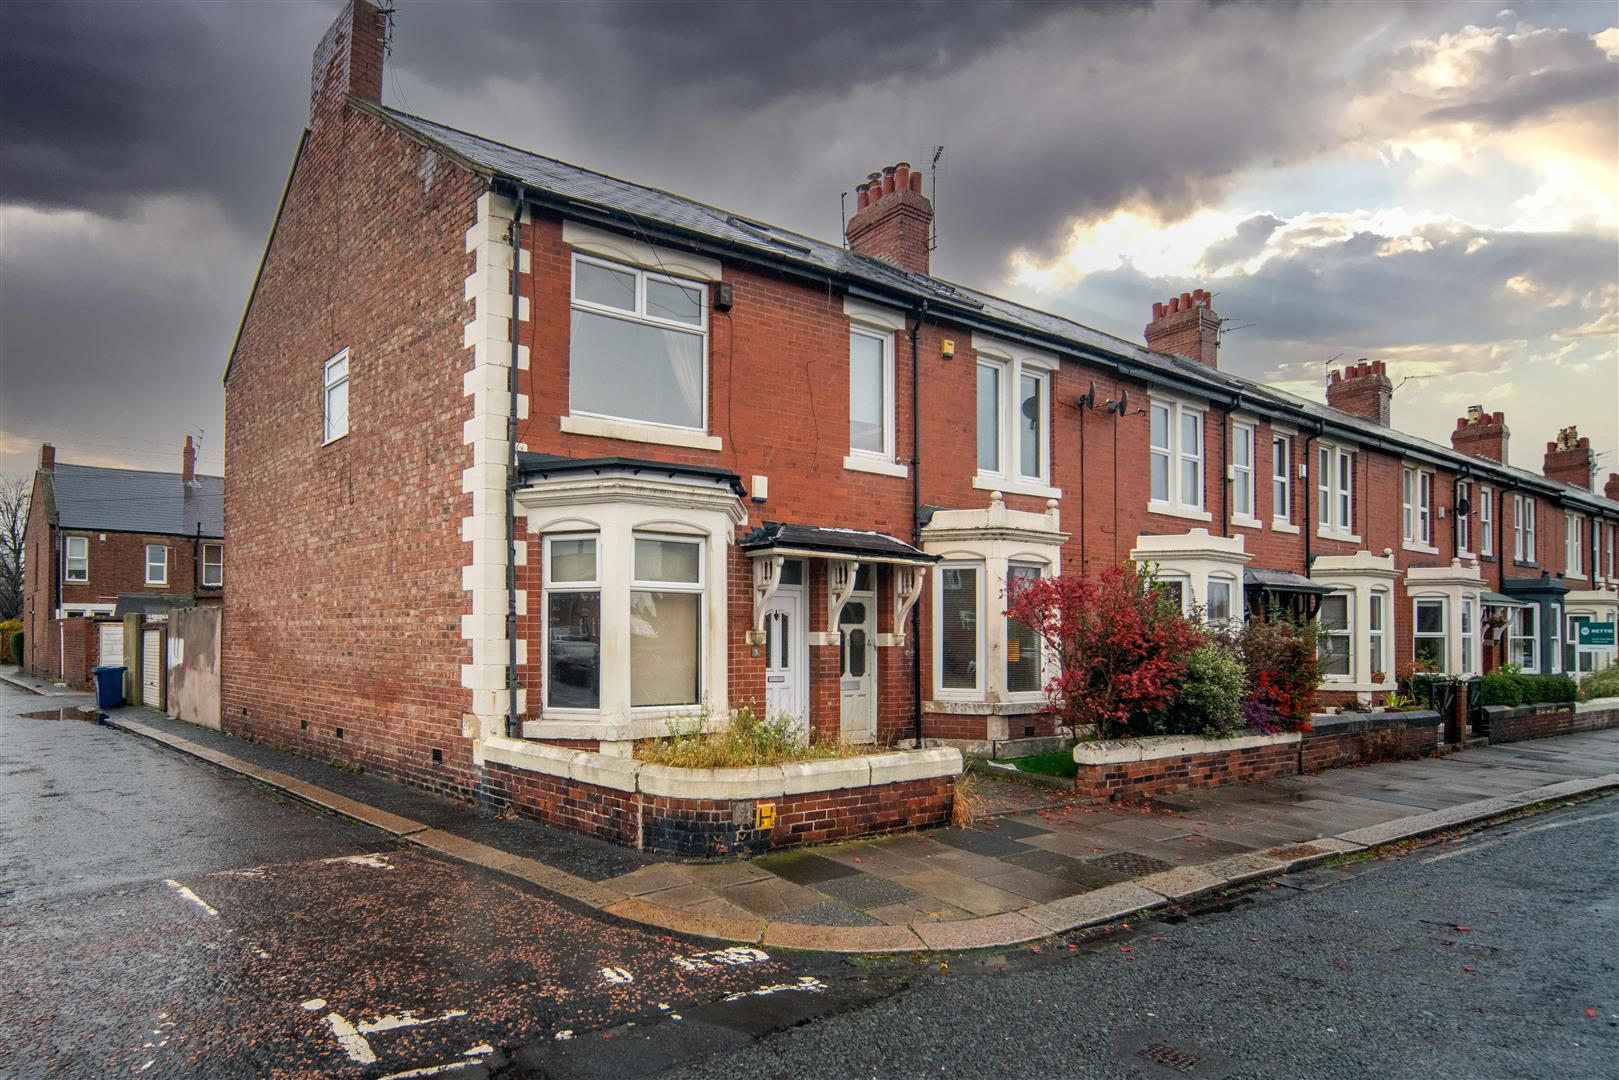 4 bed end of terrace house for sale in Heaton, NE6 5SY - Property Image 1